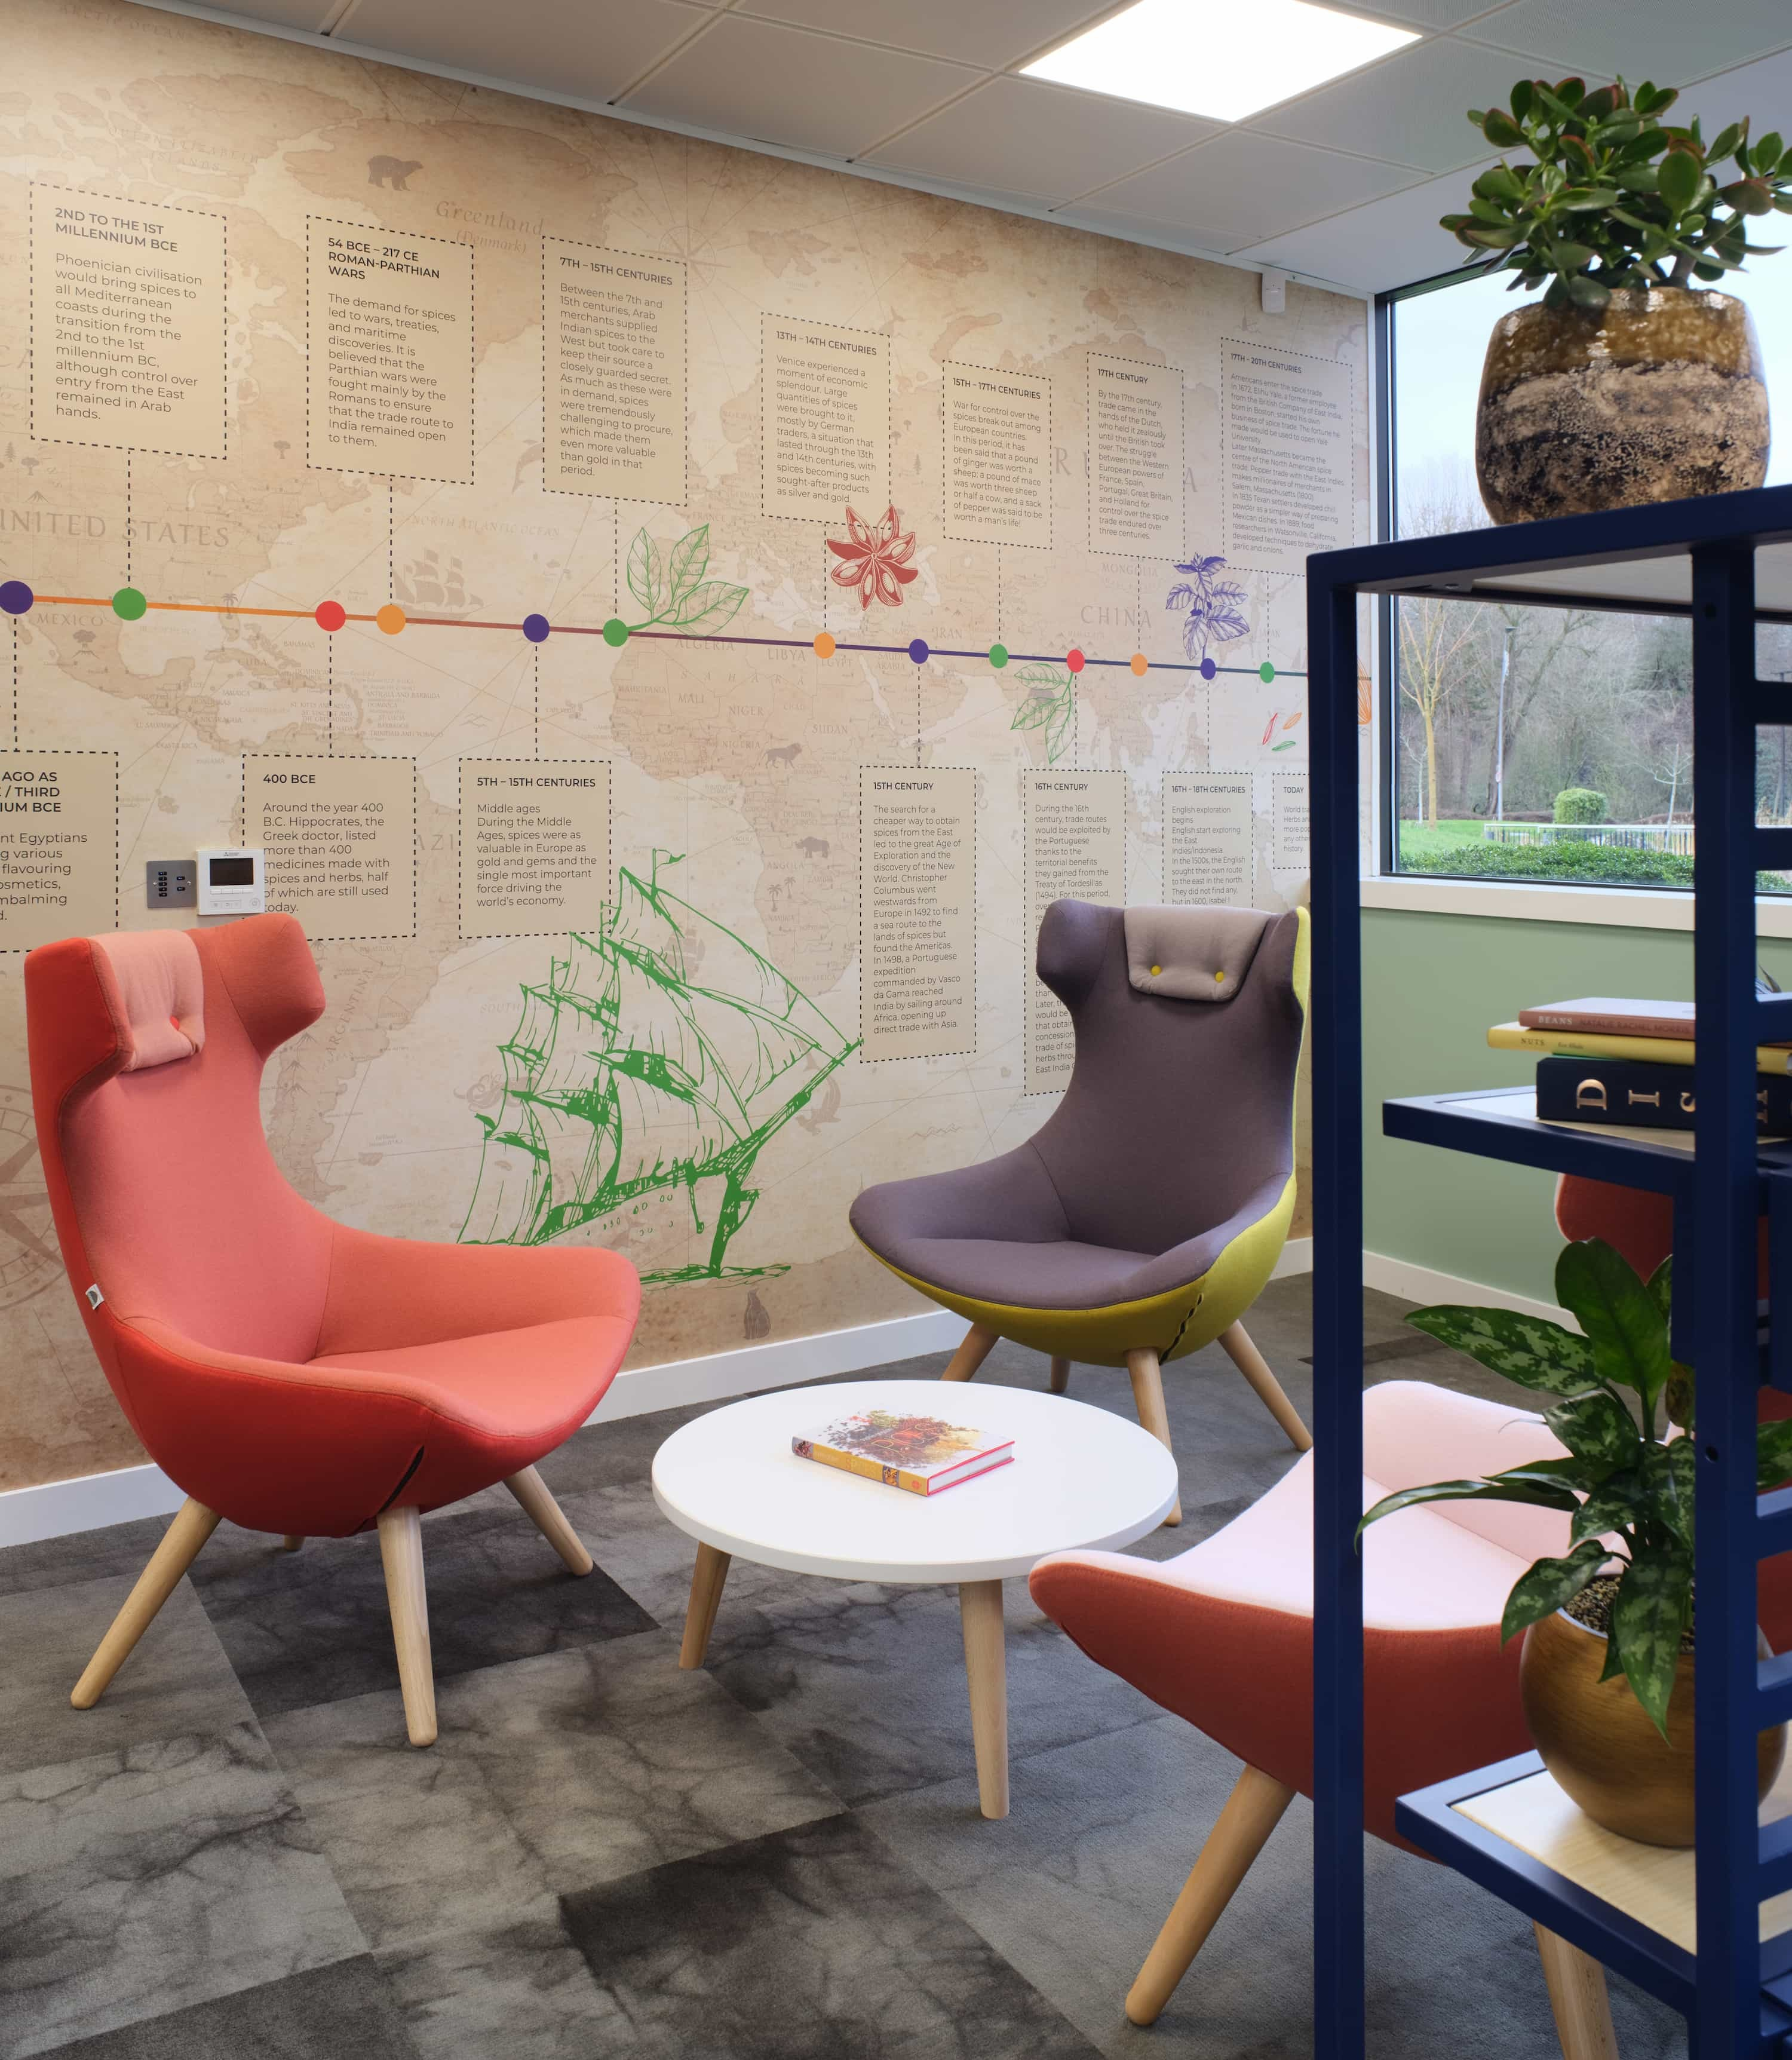 Vibrant foods small meeting area design